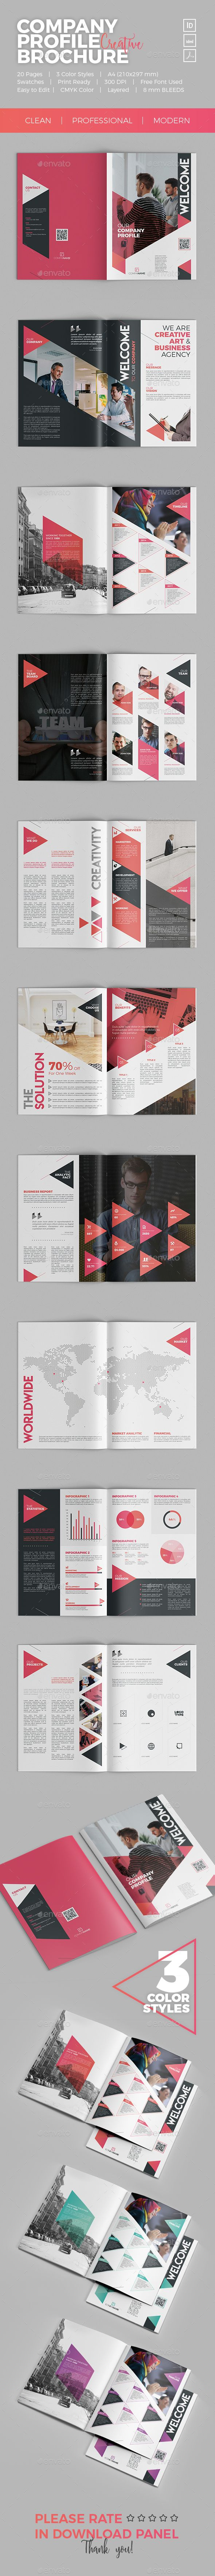 Professional Business Profile Template Company Profile Brochure  Company Profile Brochures And Brochure .